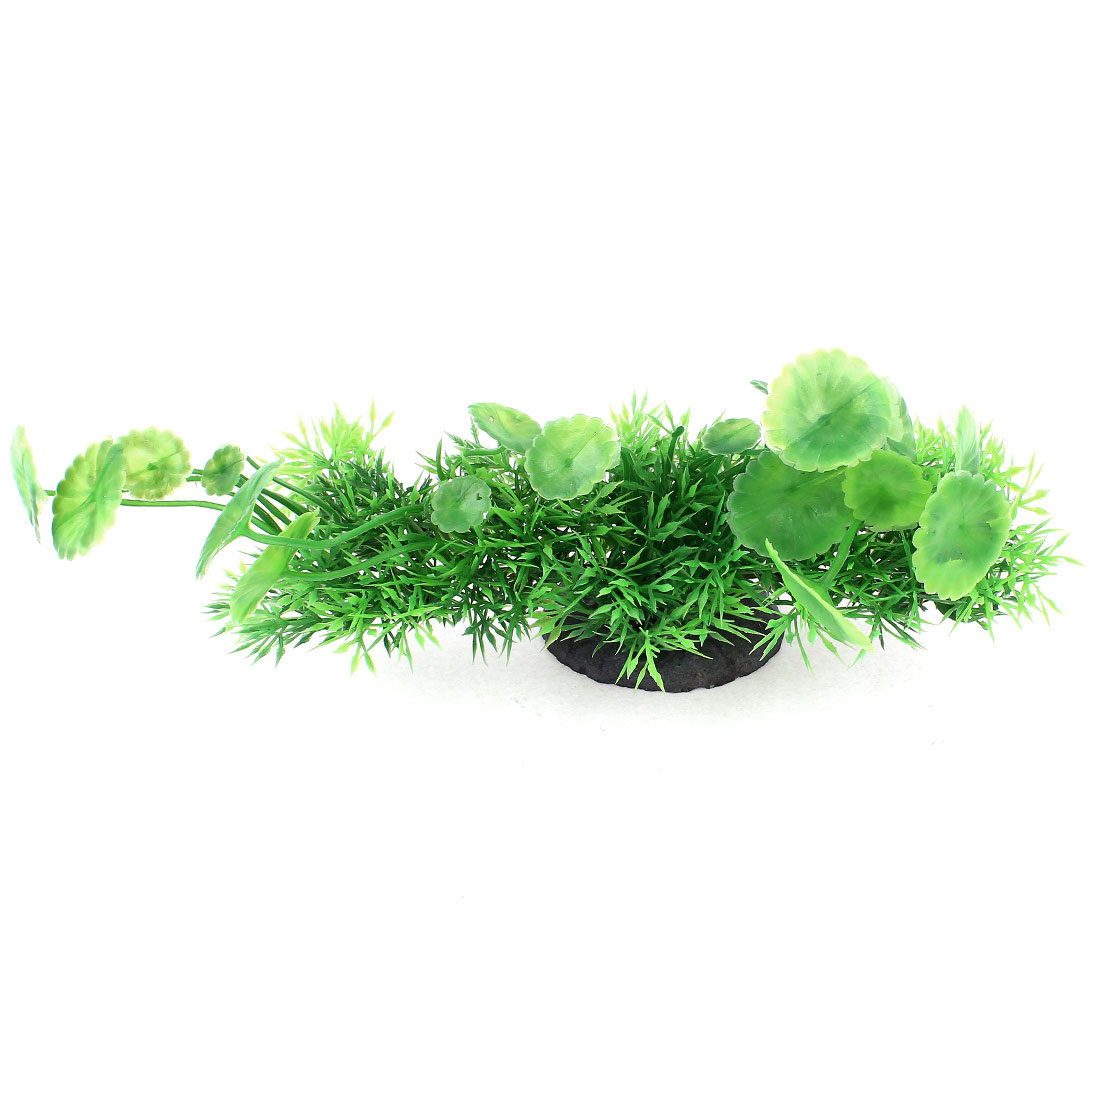 "Aquarium Underwater Plastic Artificial Grass Plant Decor Green 9"" Length"